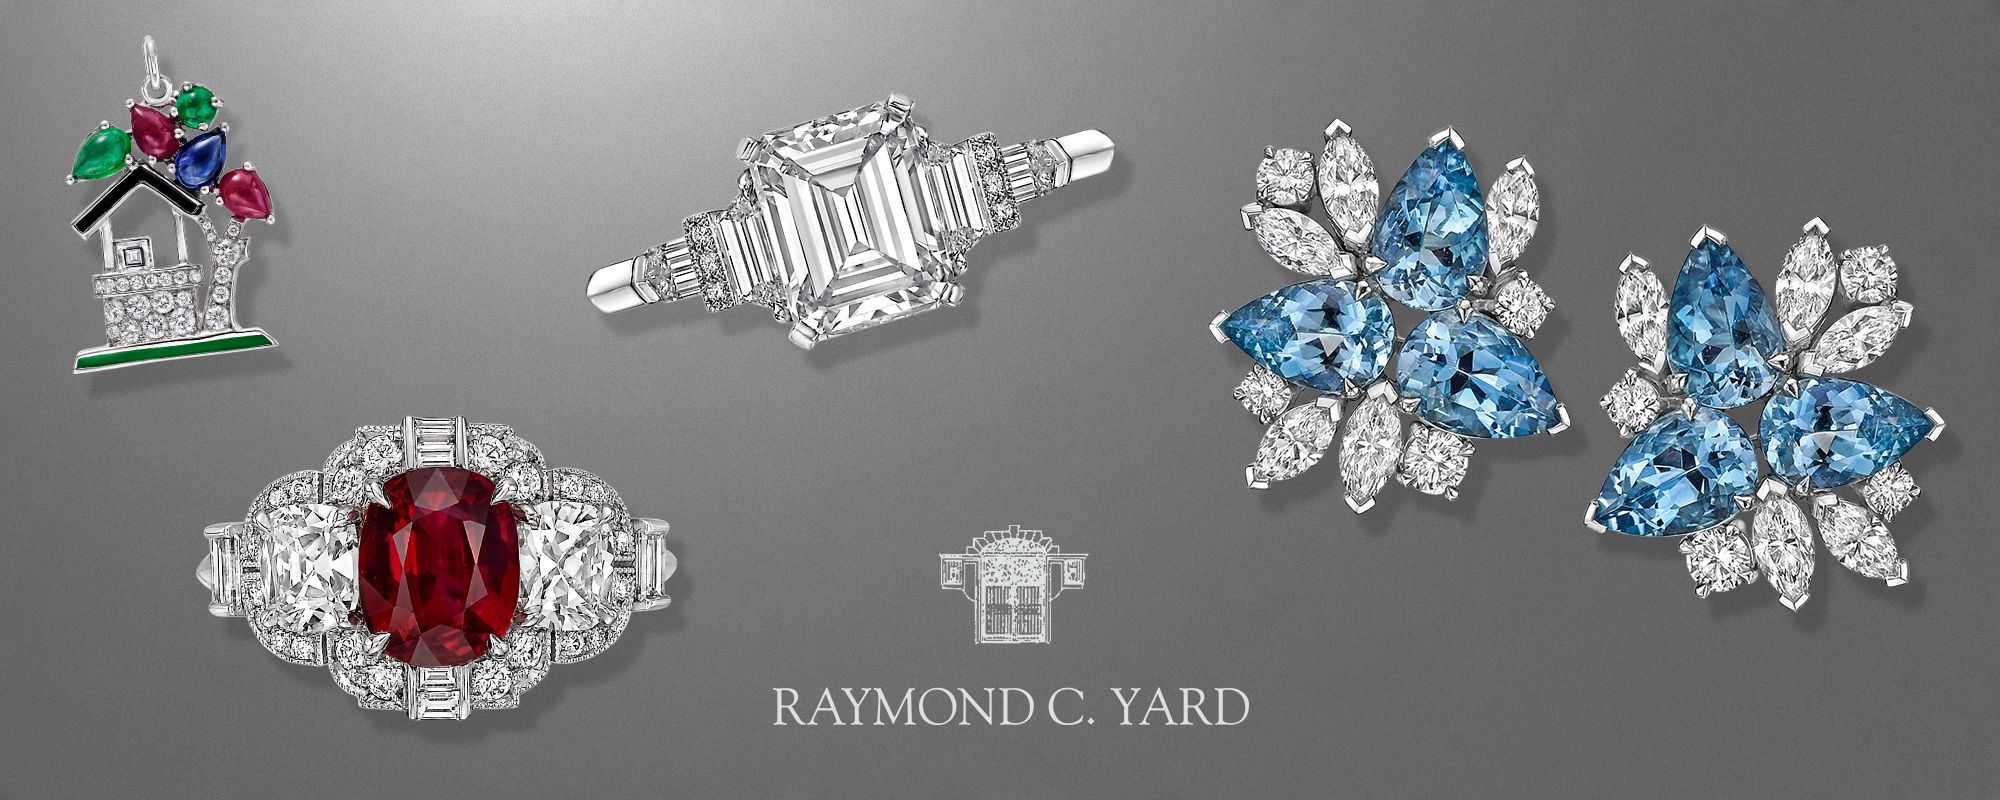 Raymond C. Yard Jewelry